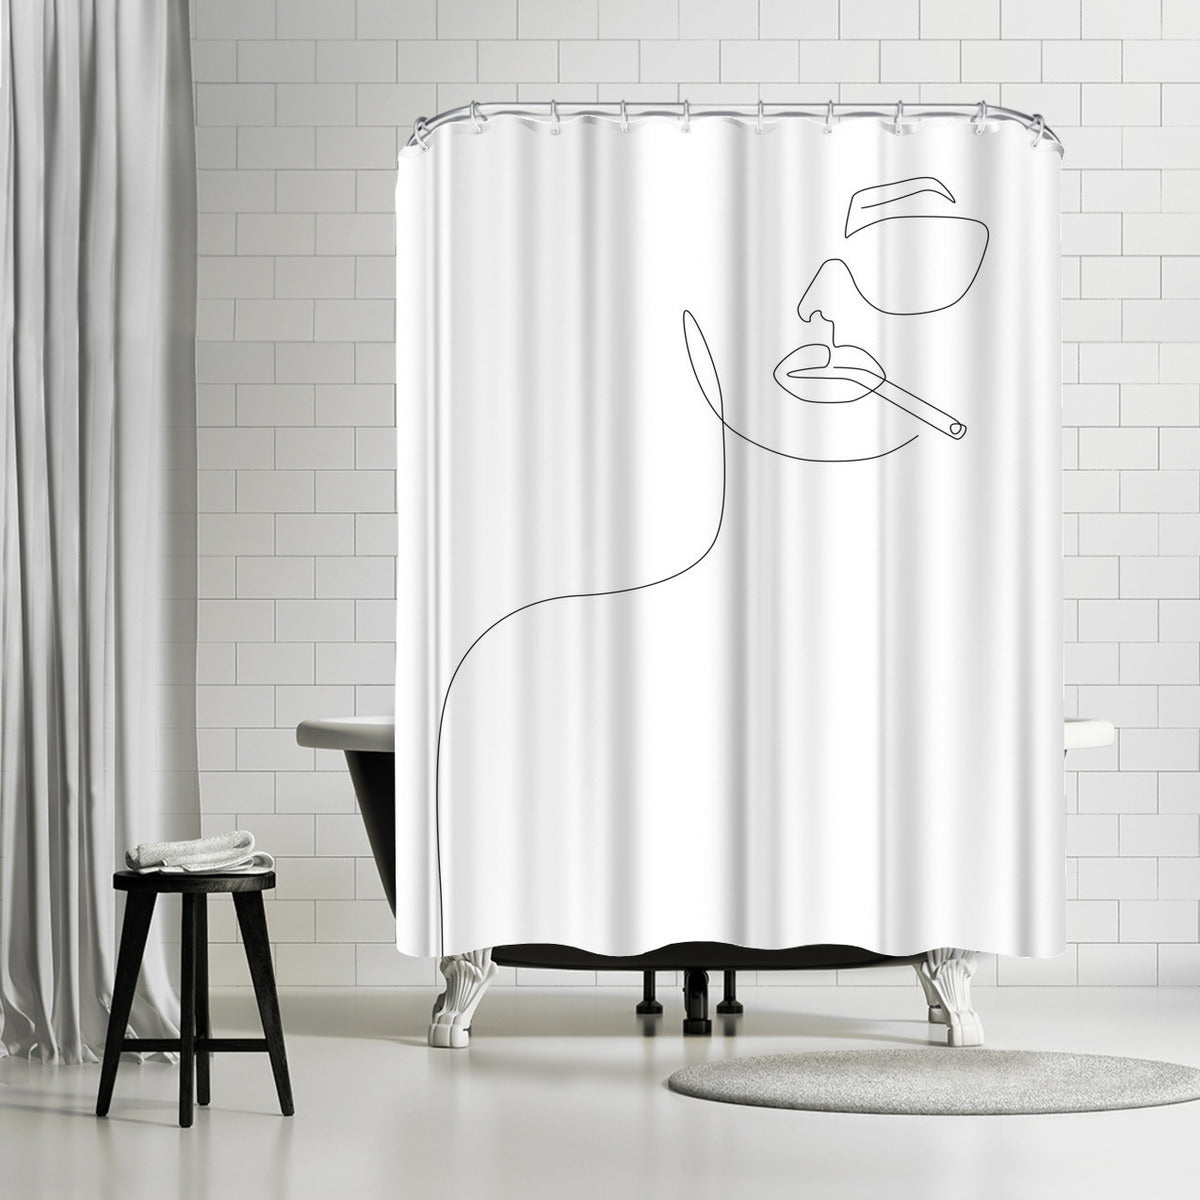 Sunny Smoke by Explicit Design Shower Curtain -  - Americanflat